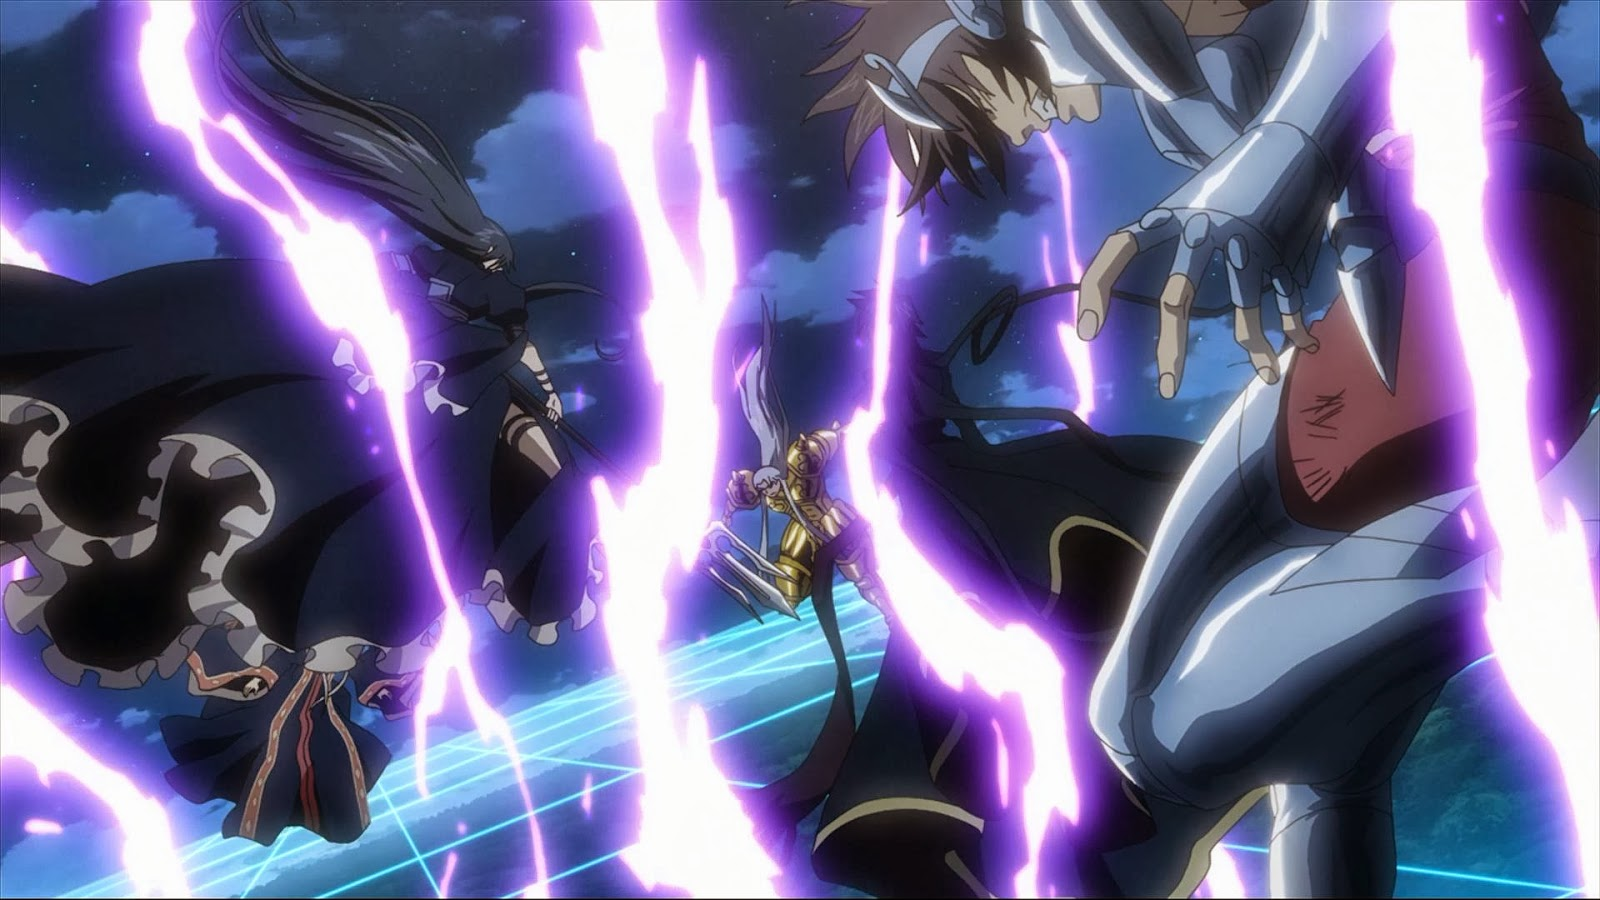 Saint seiya the lost canvas episodes